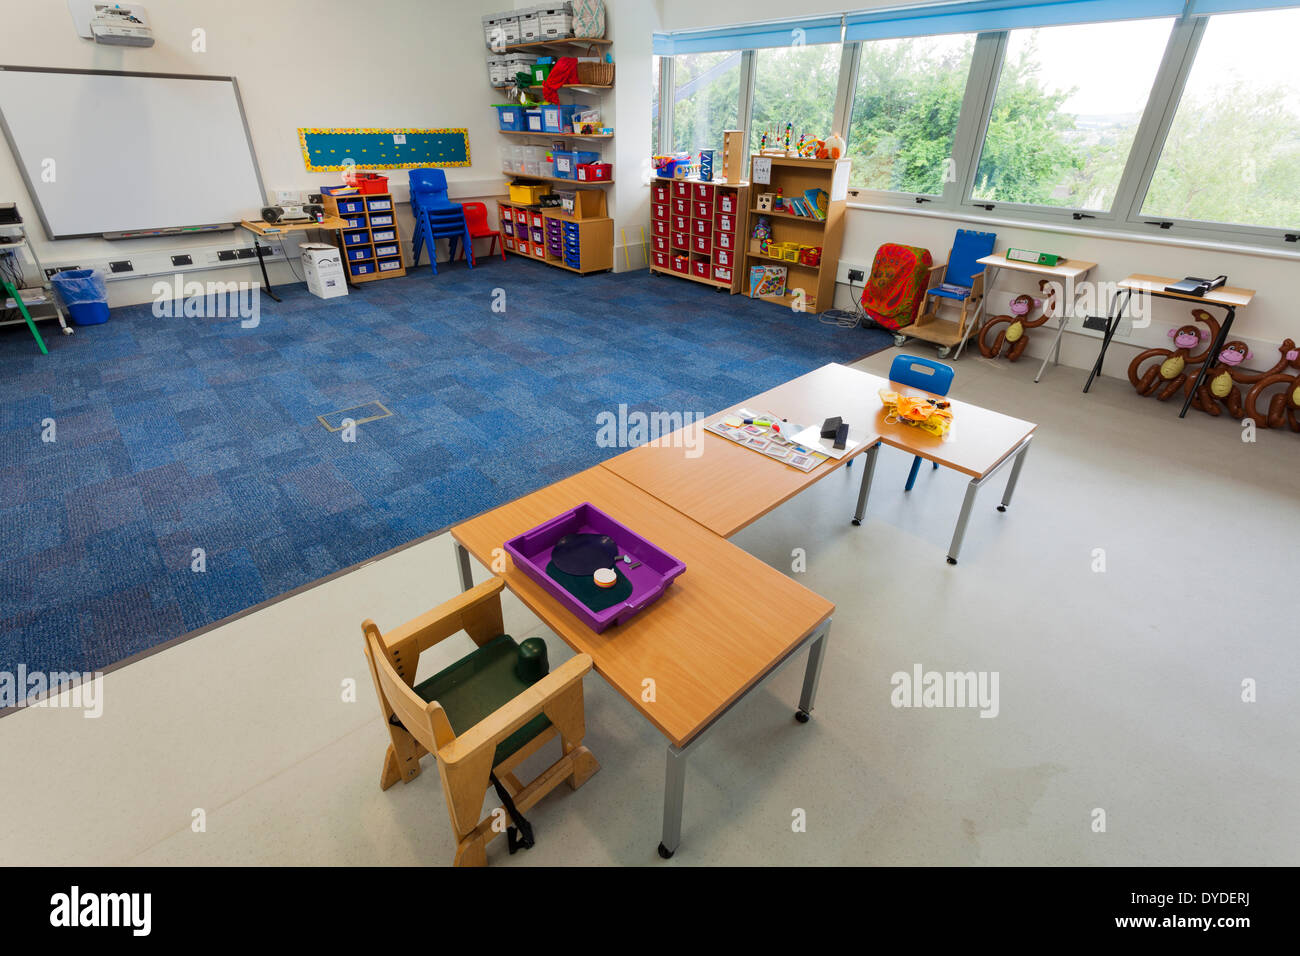 Unoccupied classroom in special needs school. - Stock Image